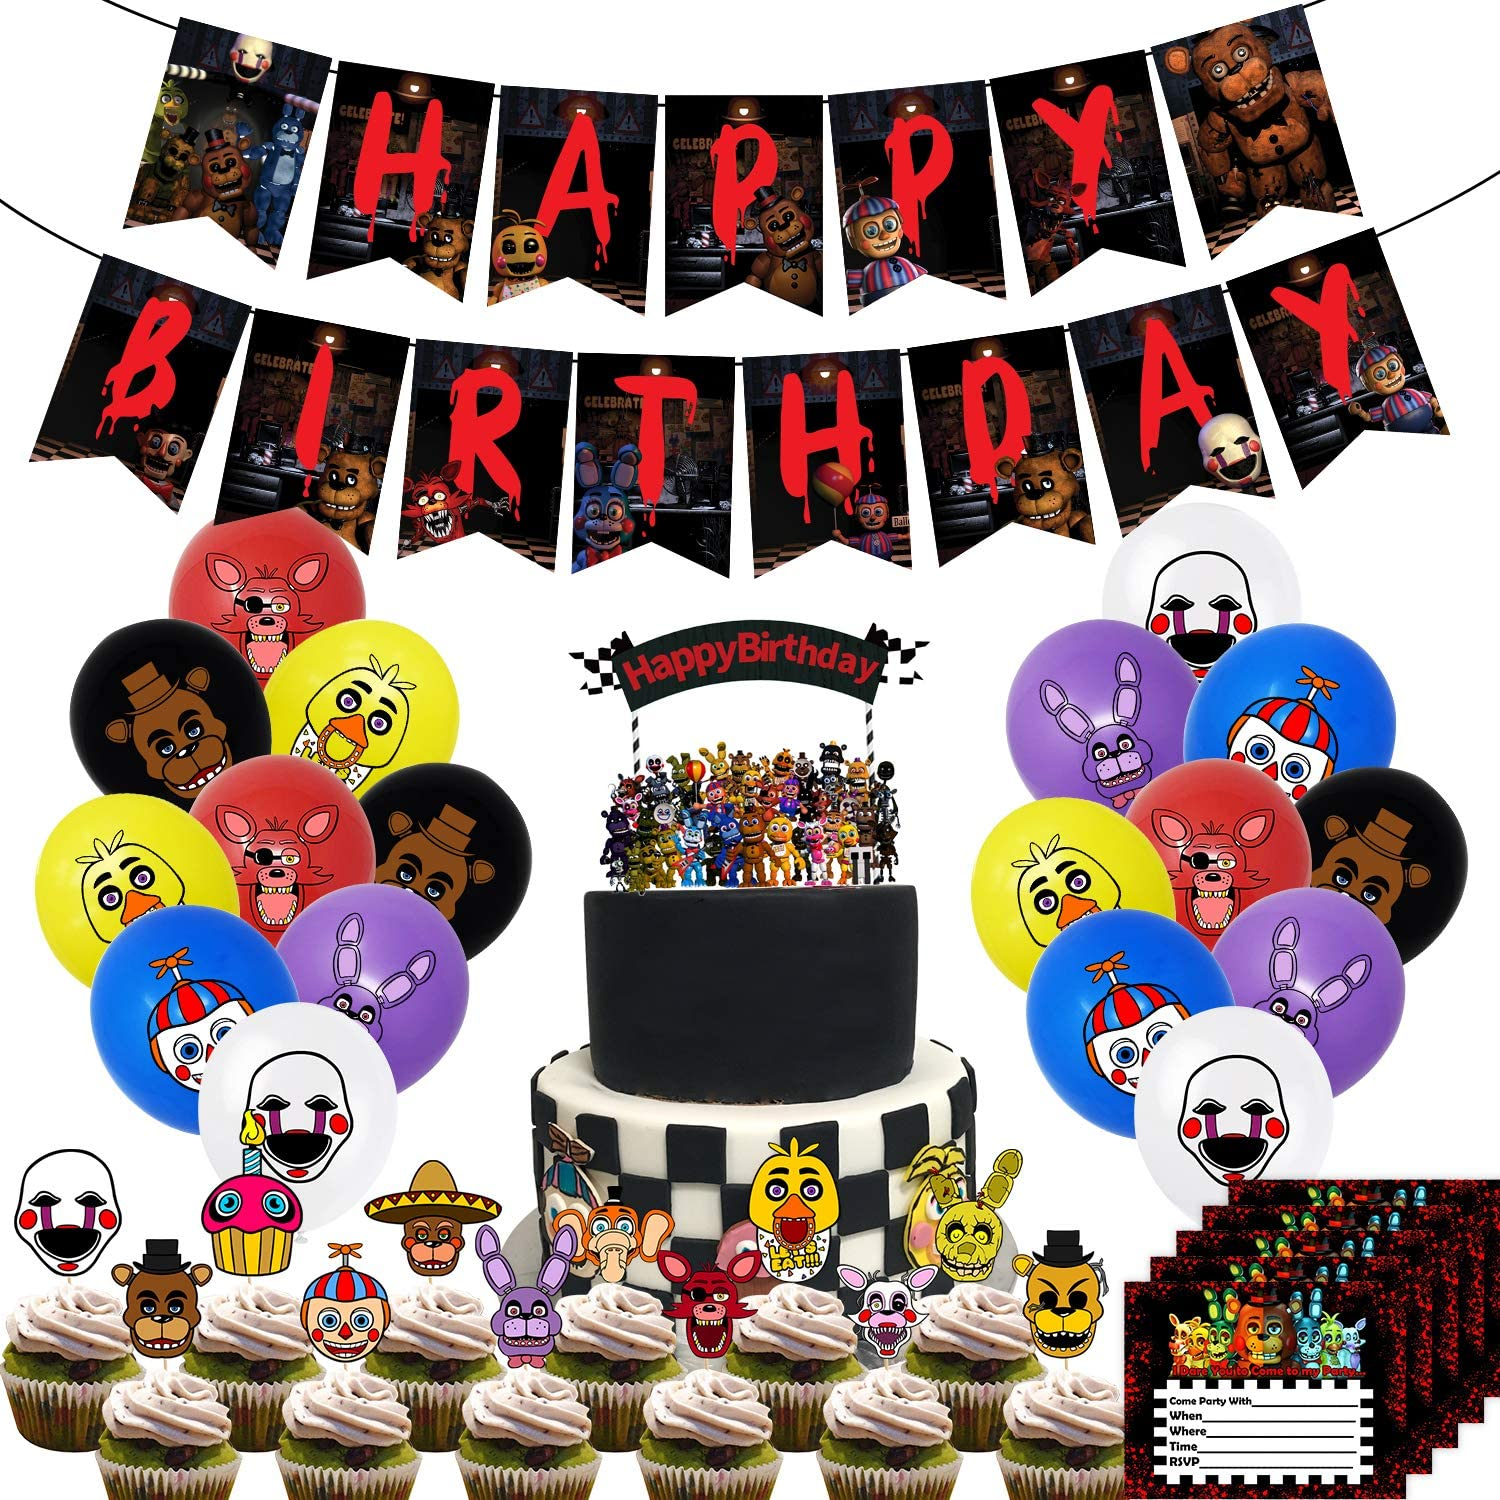 Cake Decorations For Five Nights At Freddy S Cake Topper Fnaf Happy Birthday Cake Toppers Theme Cake Decorations For Buy Online In Norway At Desertcart No Productid 229182530